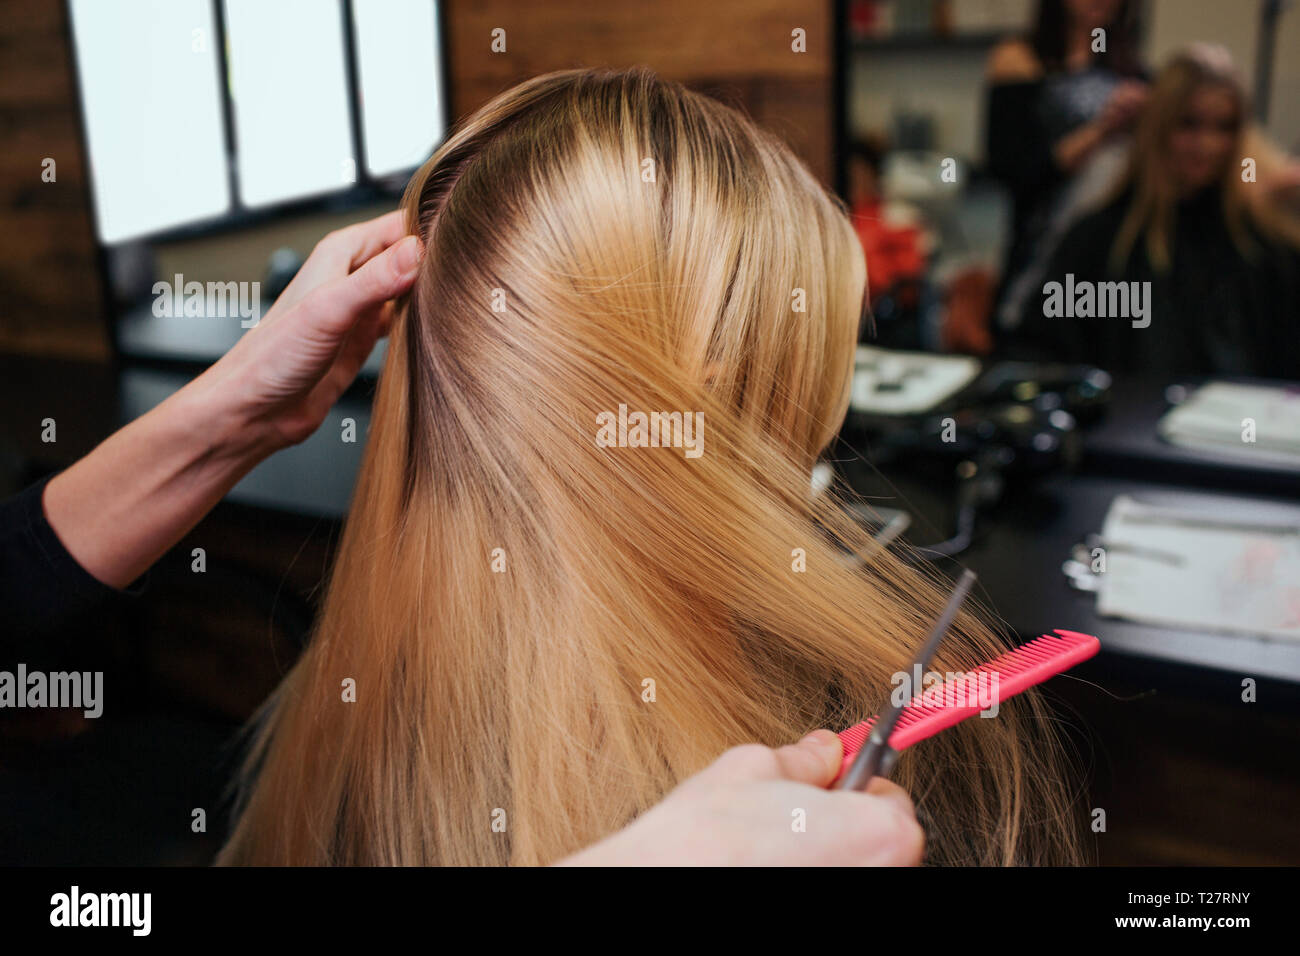 Hairstylist hands combing blonde hair before hair care procedures in beauty salon Stock Photo